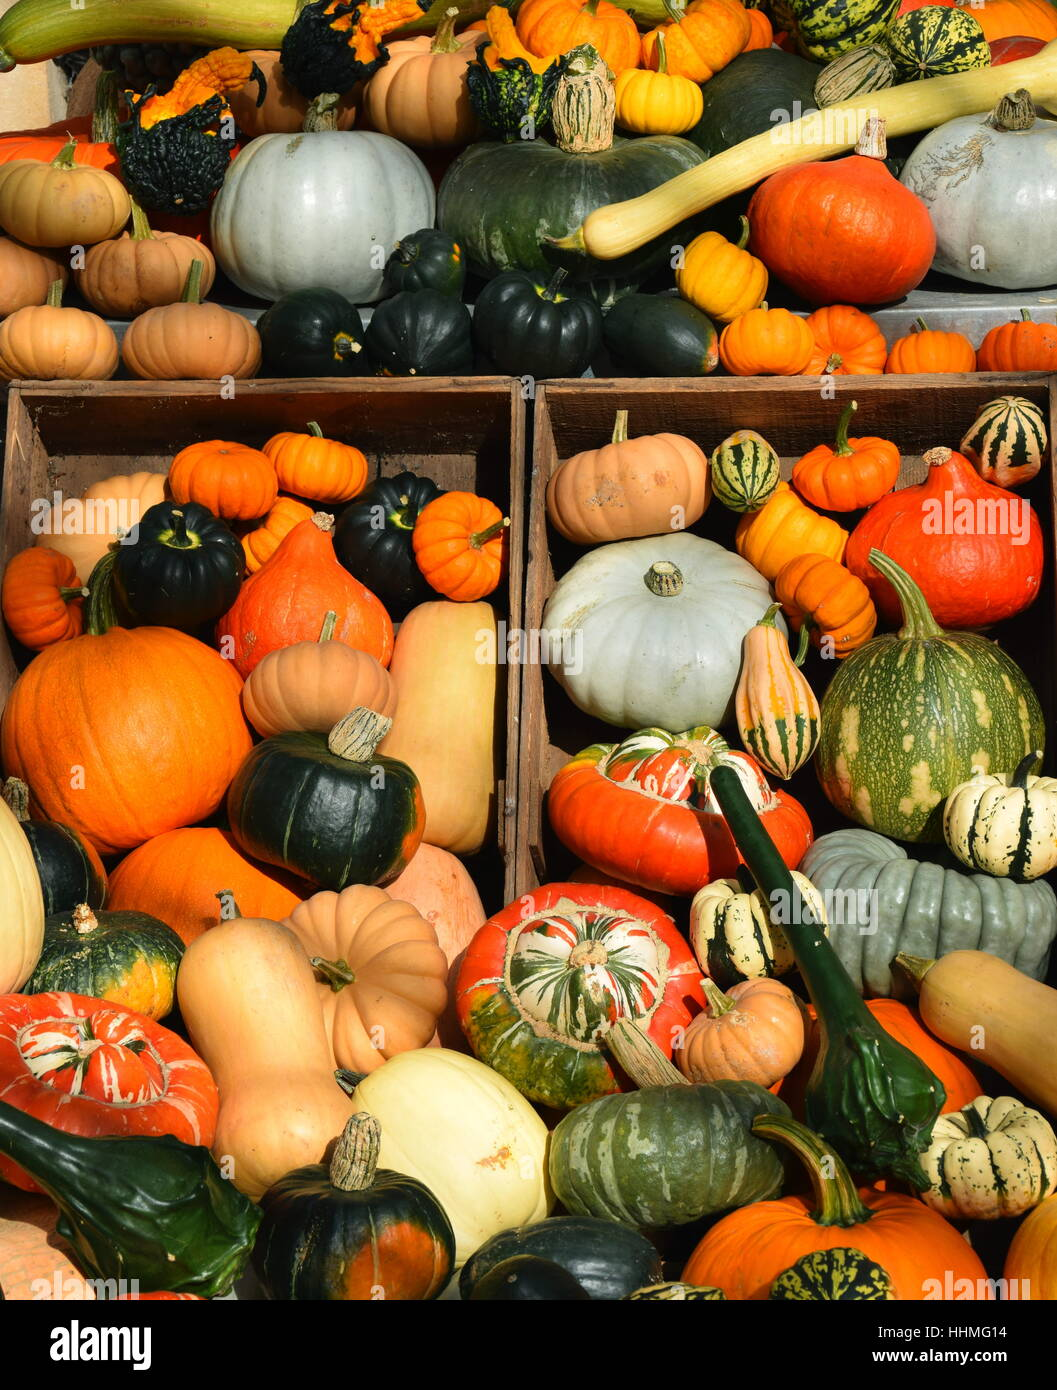 selection of various types of gourds, squashes and pumpkins in wooden boxes - Stock Image